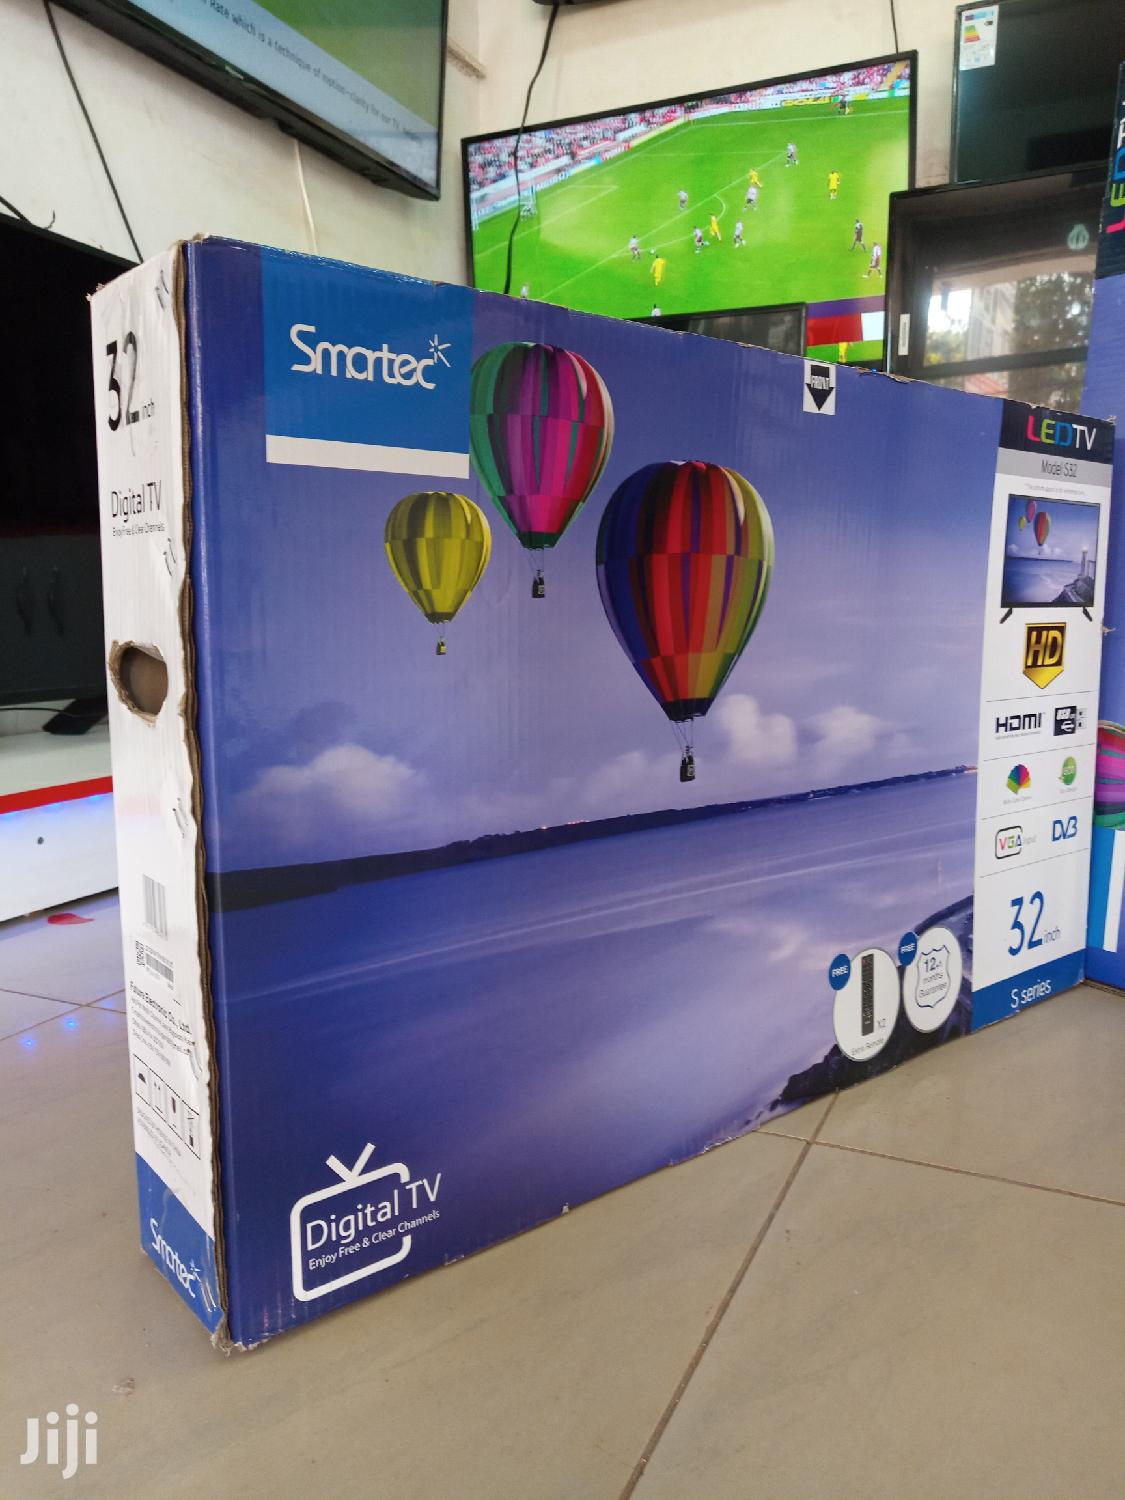 Brand New Smatec Led Digital TV 32inches By Hisense